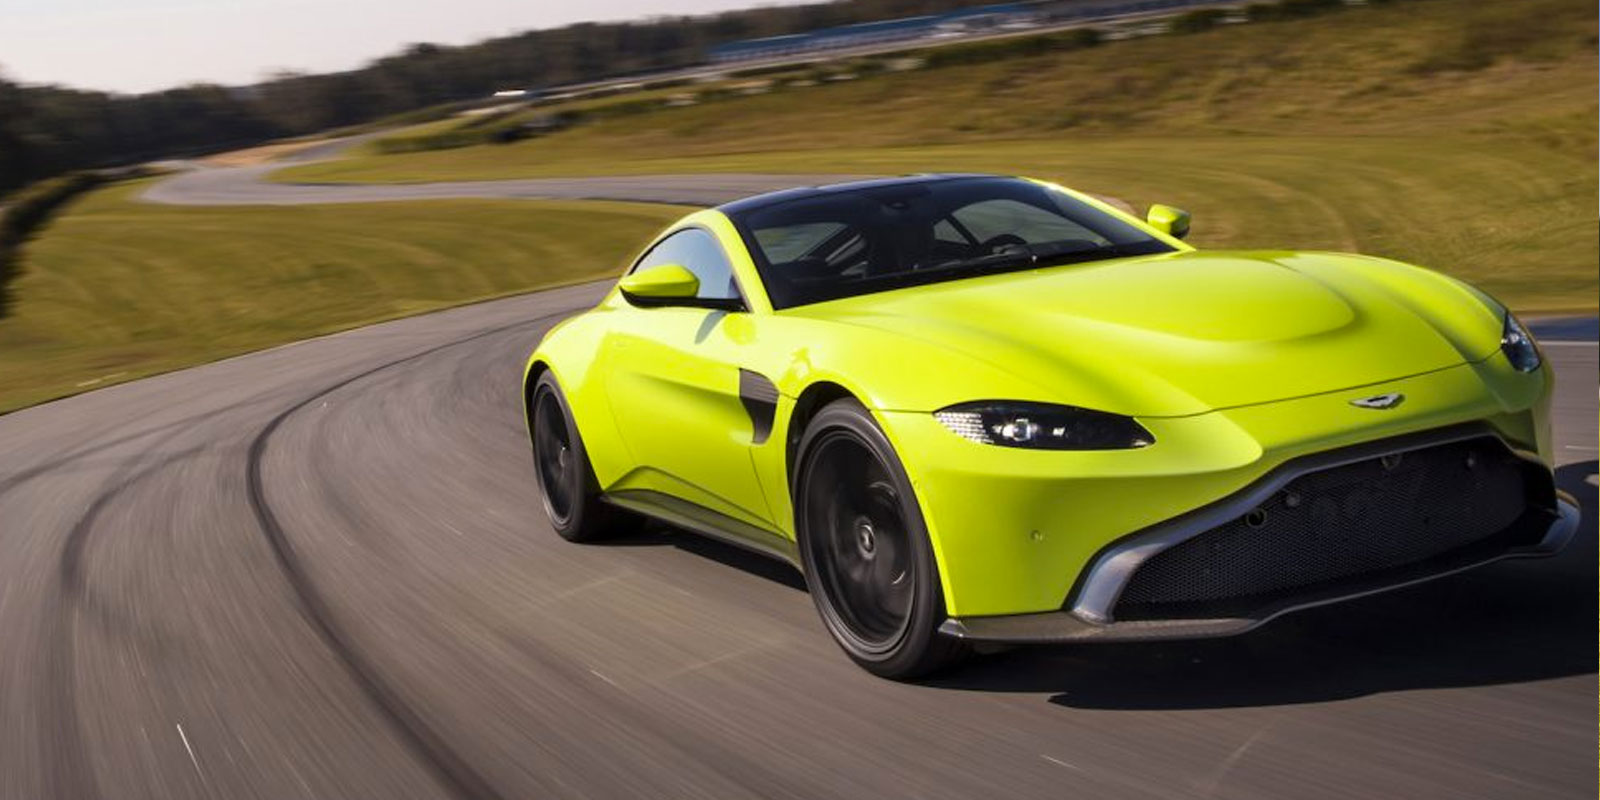 Aston Martin New Vantage - The Archetypal Hunter image 13